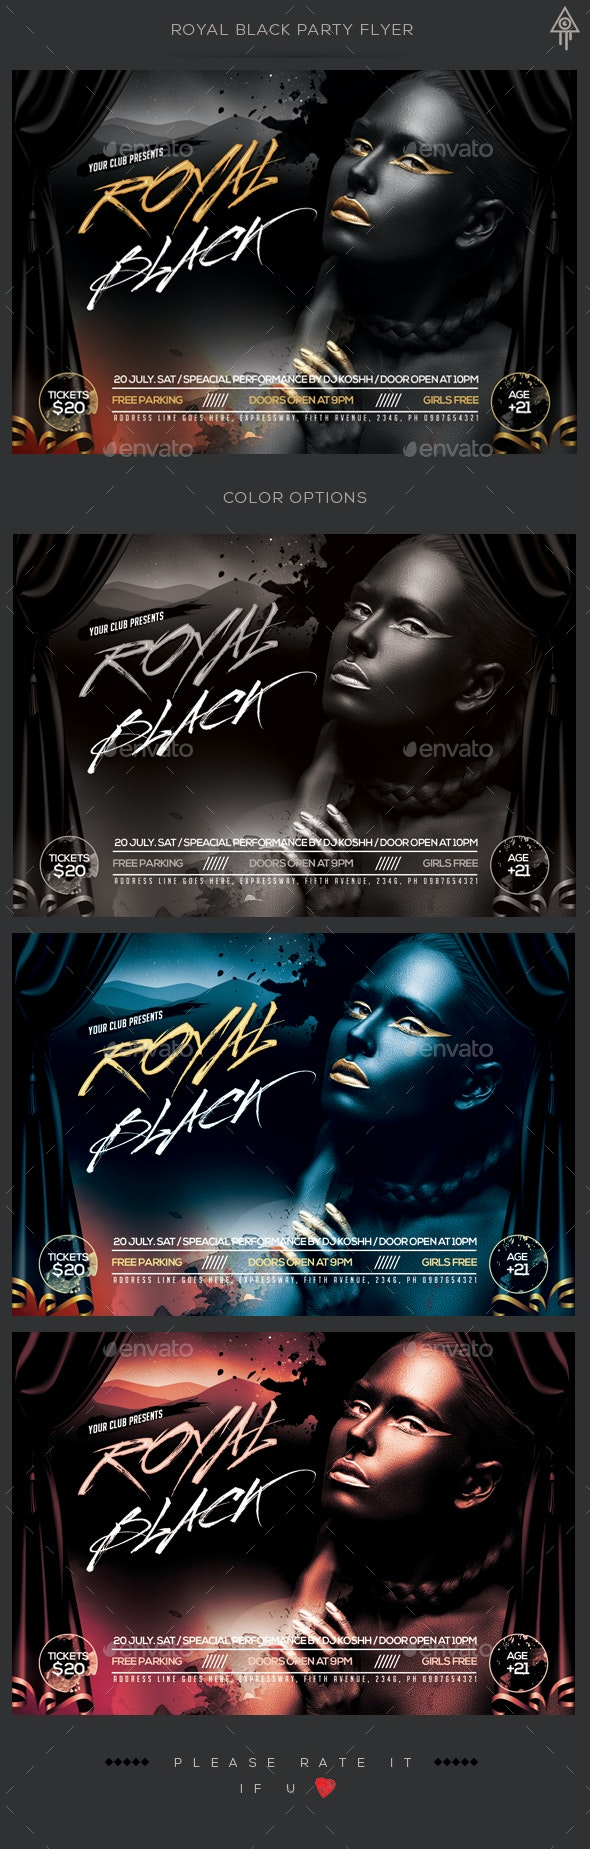 Royal Black Party Flyer - Clubs & Parties Events